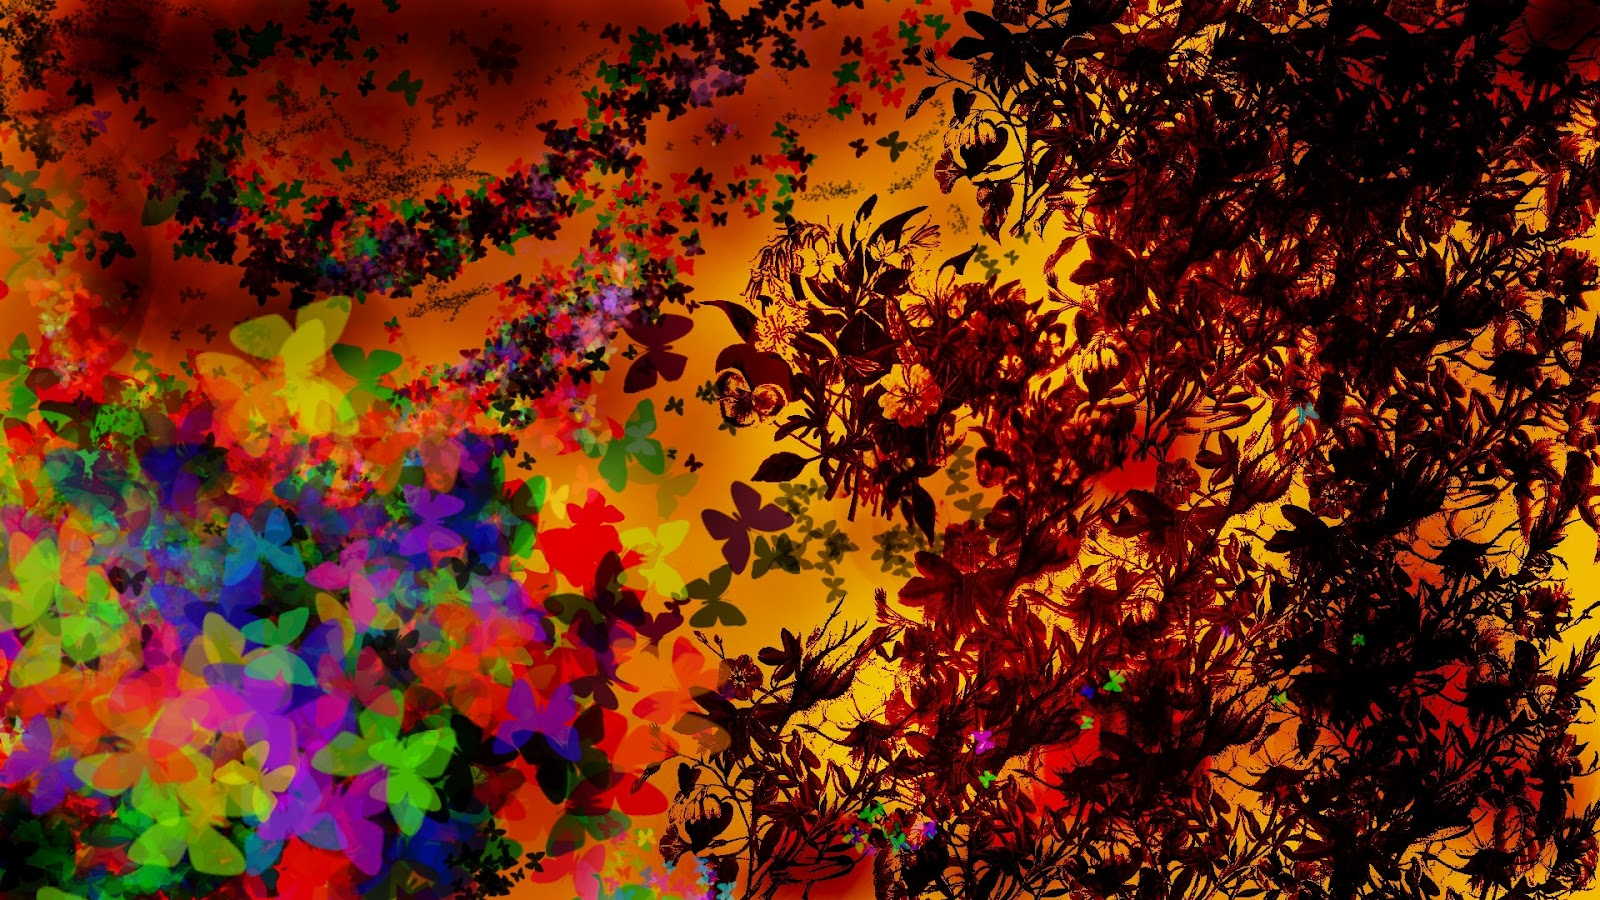 Wallpaper And Image 30 Colorful Abstract Wallpapers Full Hd 1080p